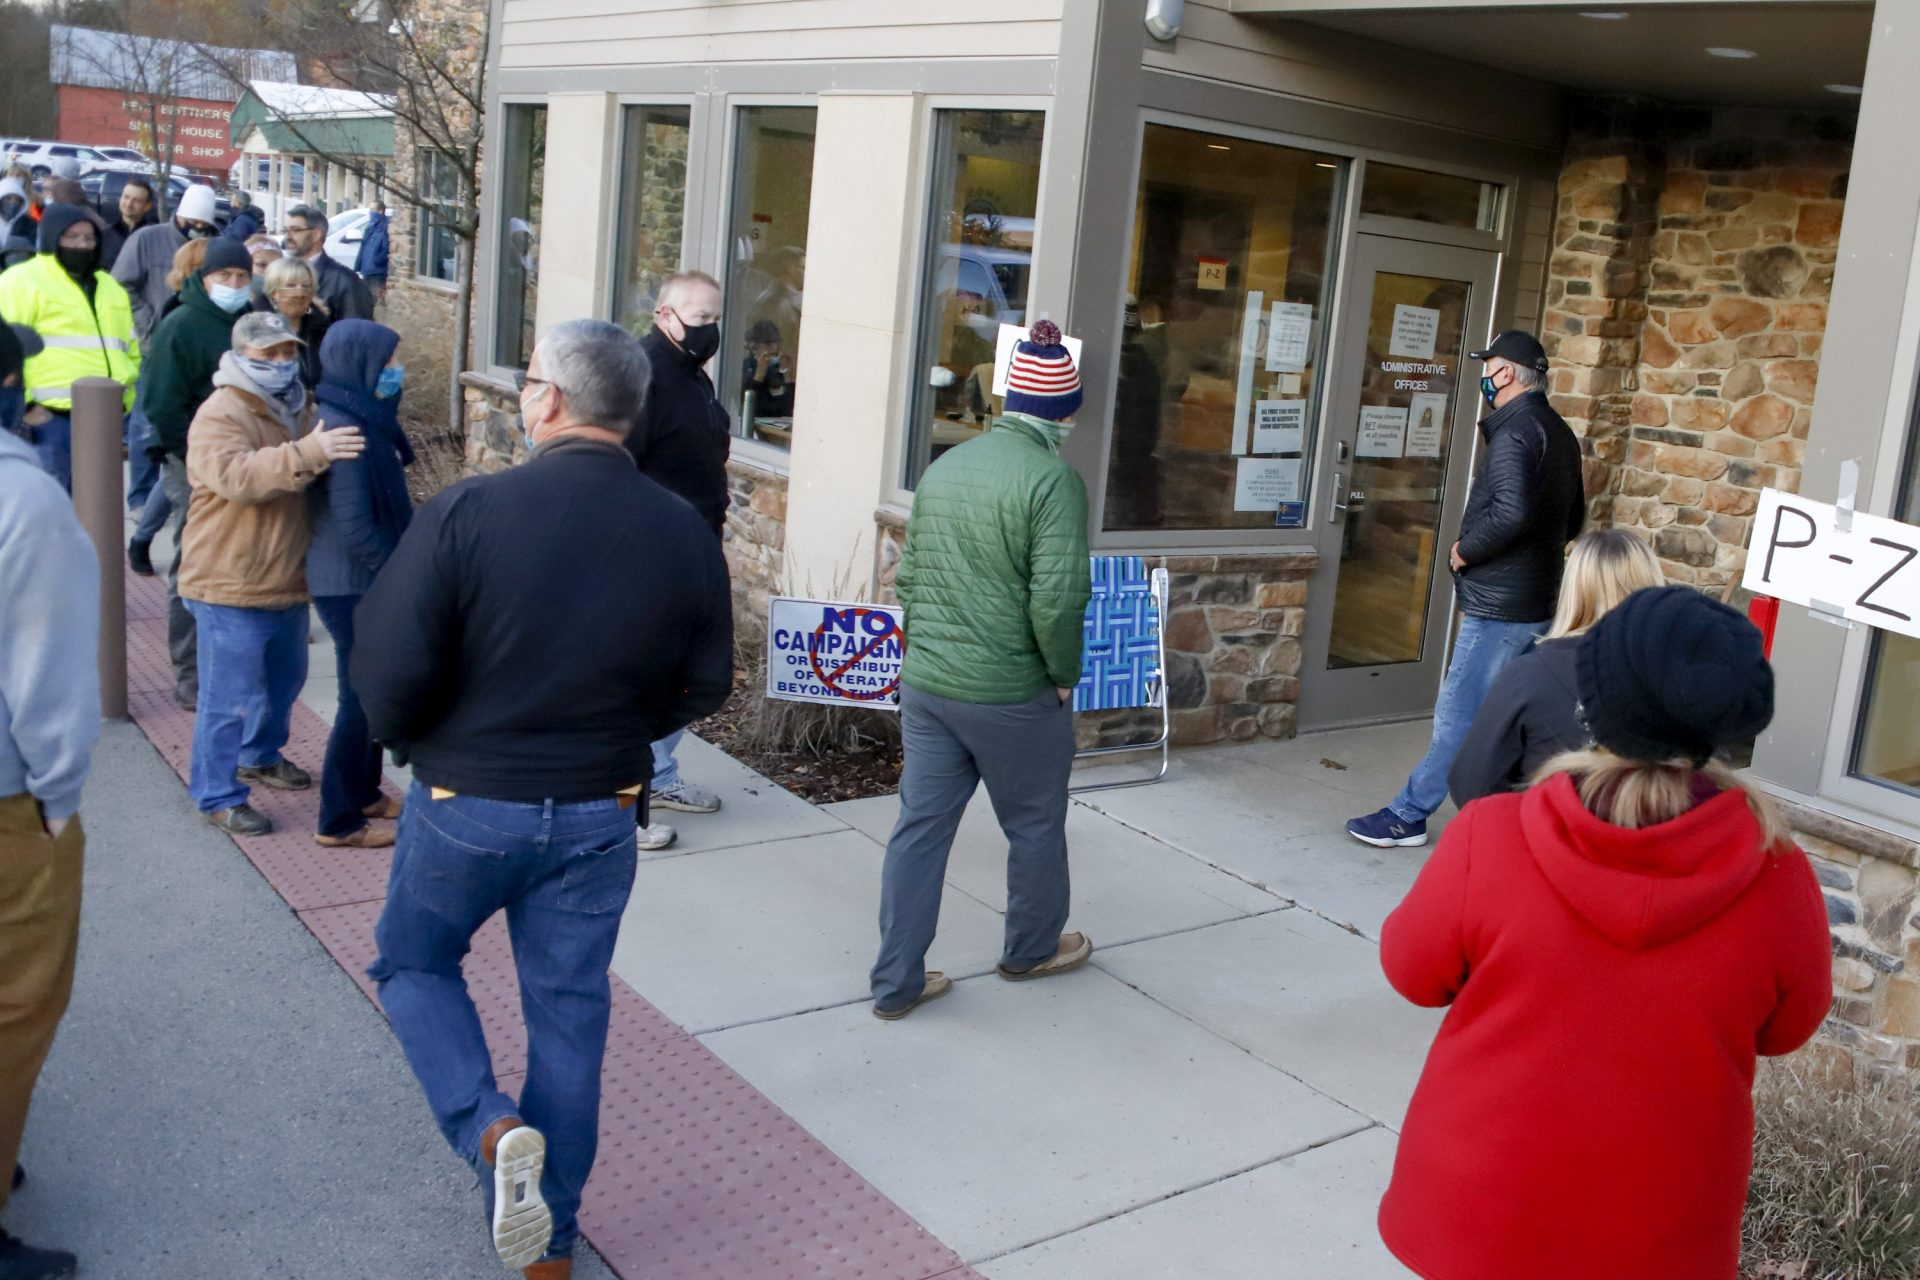 People lined up at the Jackson Township Municipal Building, start to enter the poll as it opens, Tuesday, Nov. 3, 2020, Election Day, in Jackson Township, Pa.